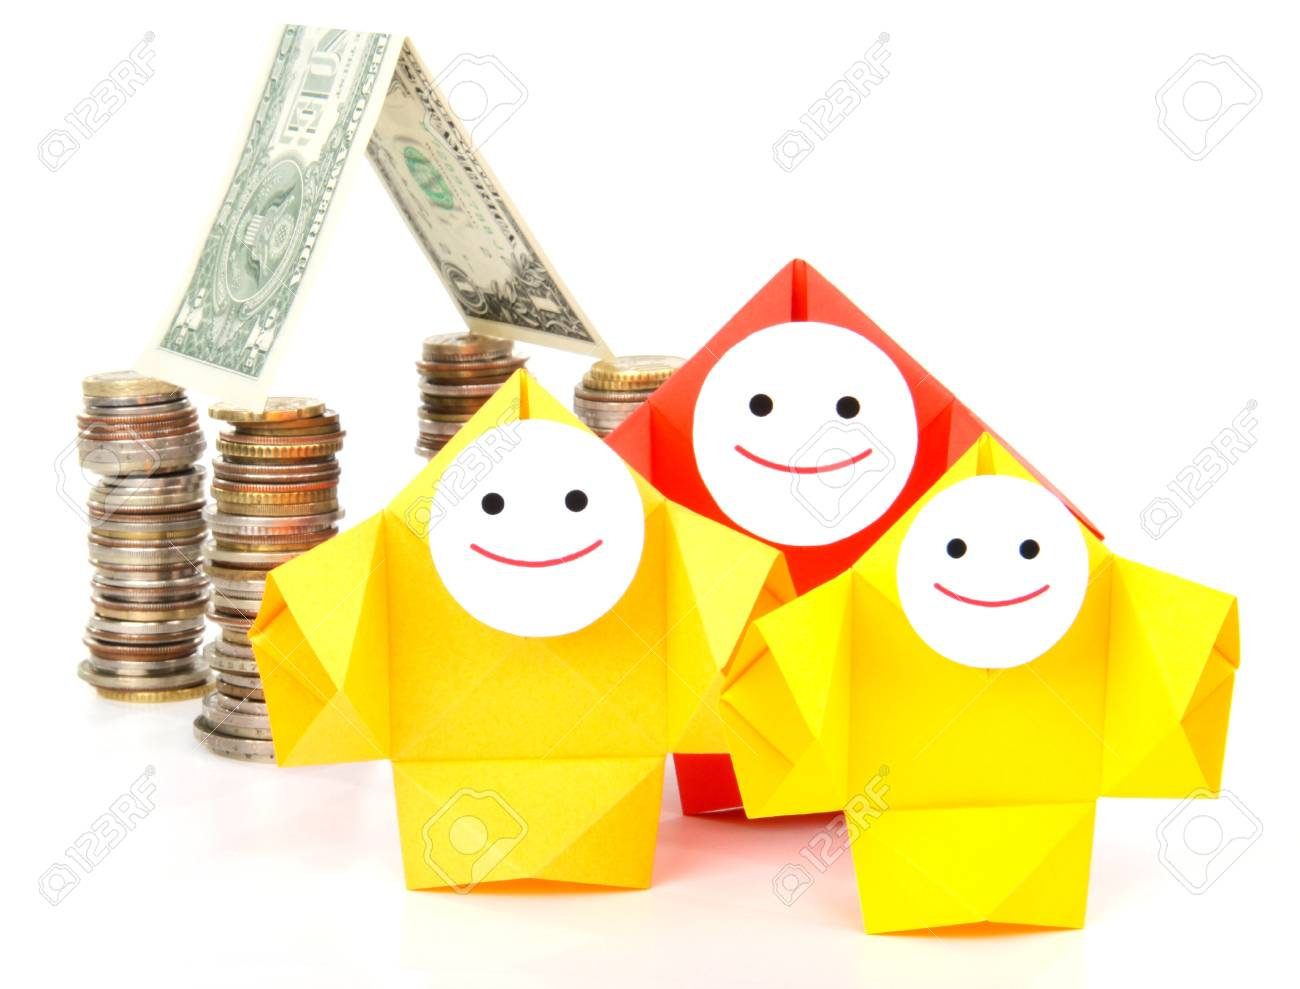 Conceptual image of money, earnings, and economy Stock Photo - 14208023